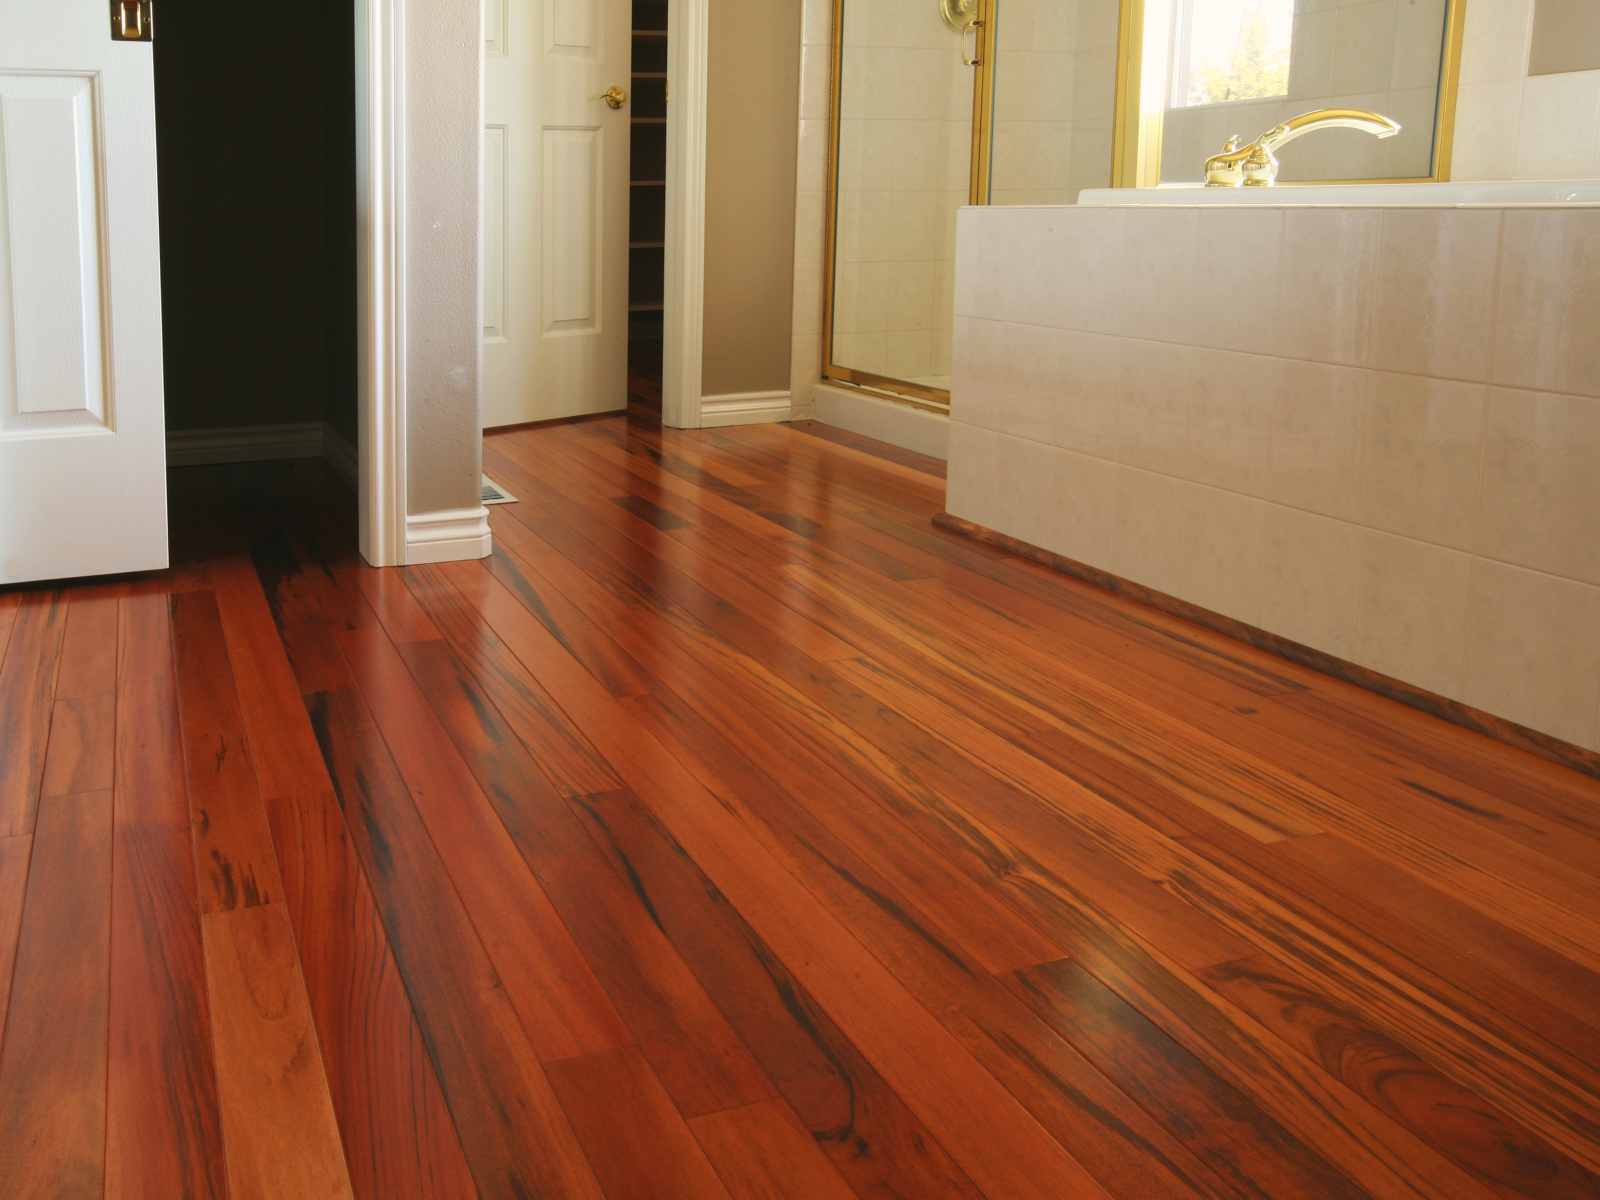 Bamboo flooring eco friendly flooring for your home for Eco floor